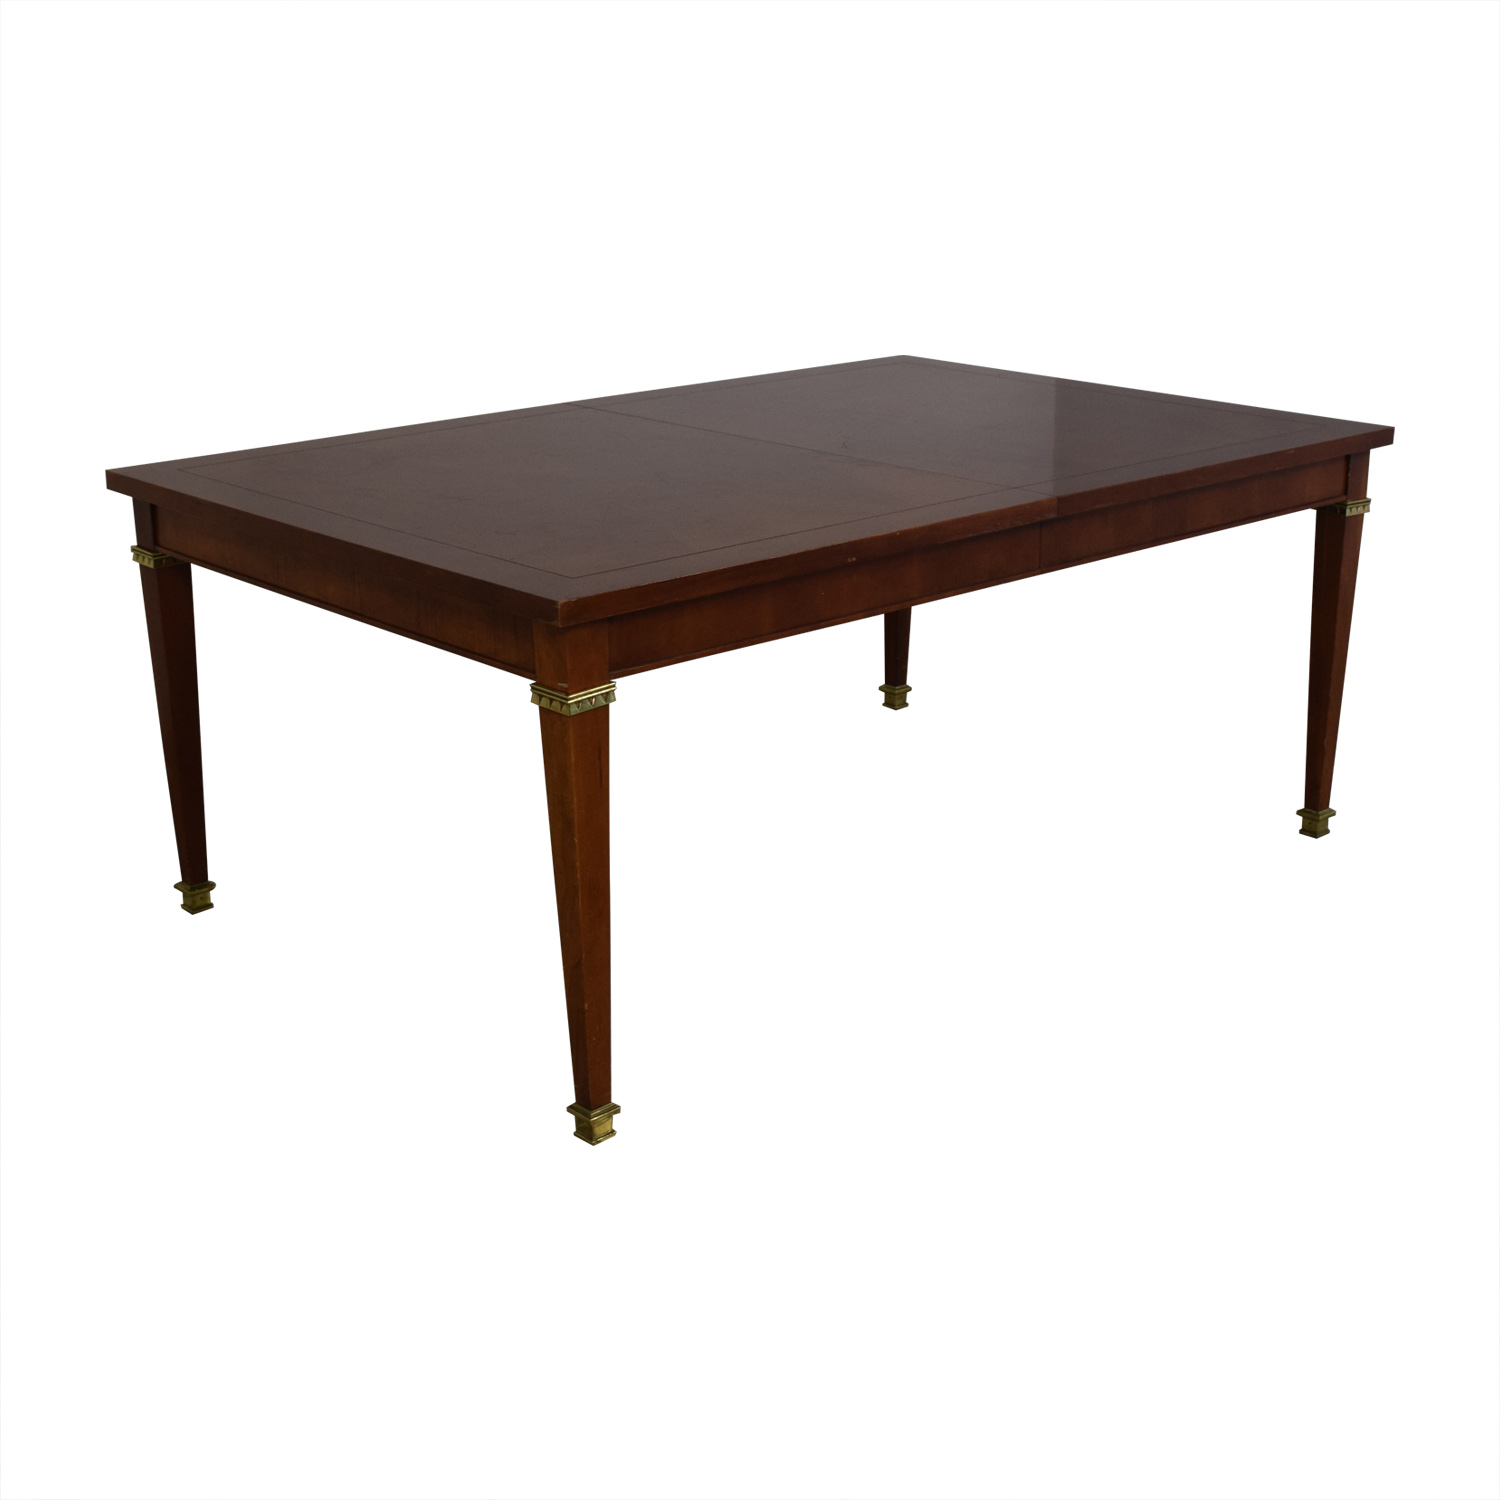 shop Vintage Dining Table With Gold Accents  Dinner Tables